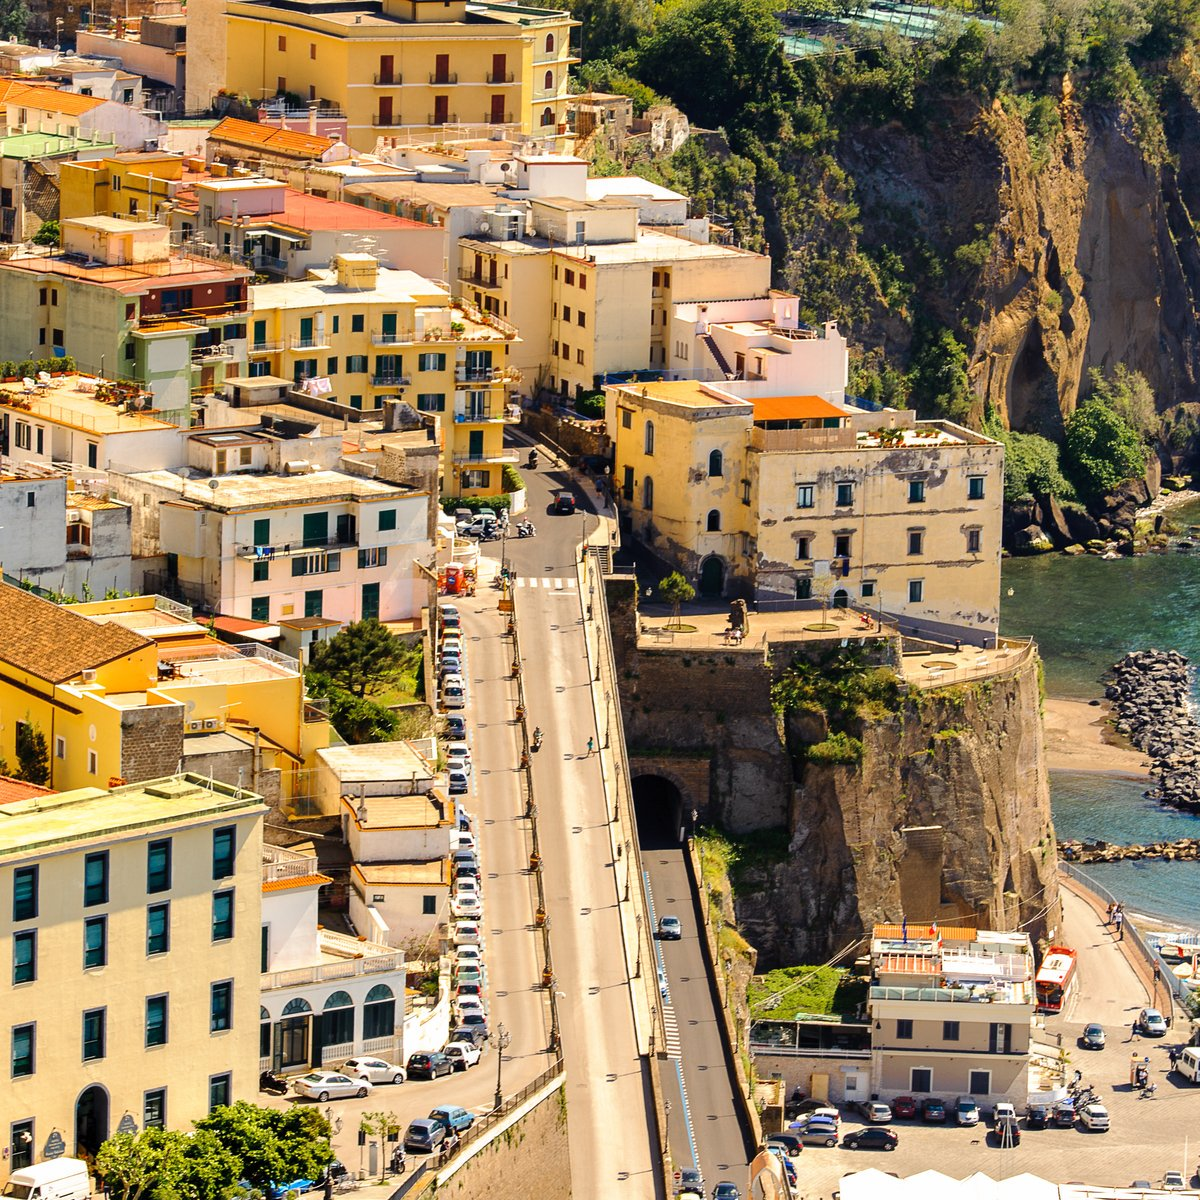 Aerial view of #Sorrento, #Italy.😍  #Travel #Vacation https://t.co/t0k5xSKbpD